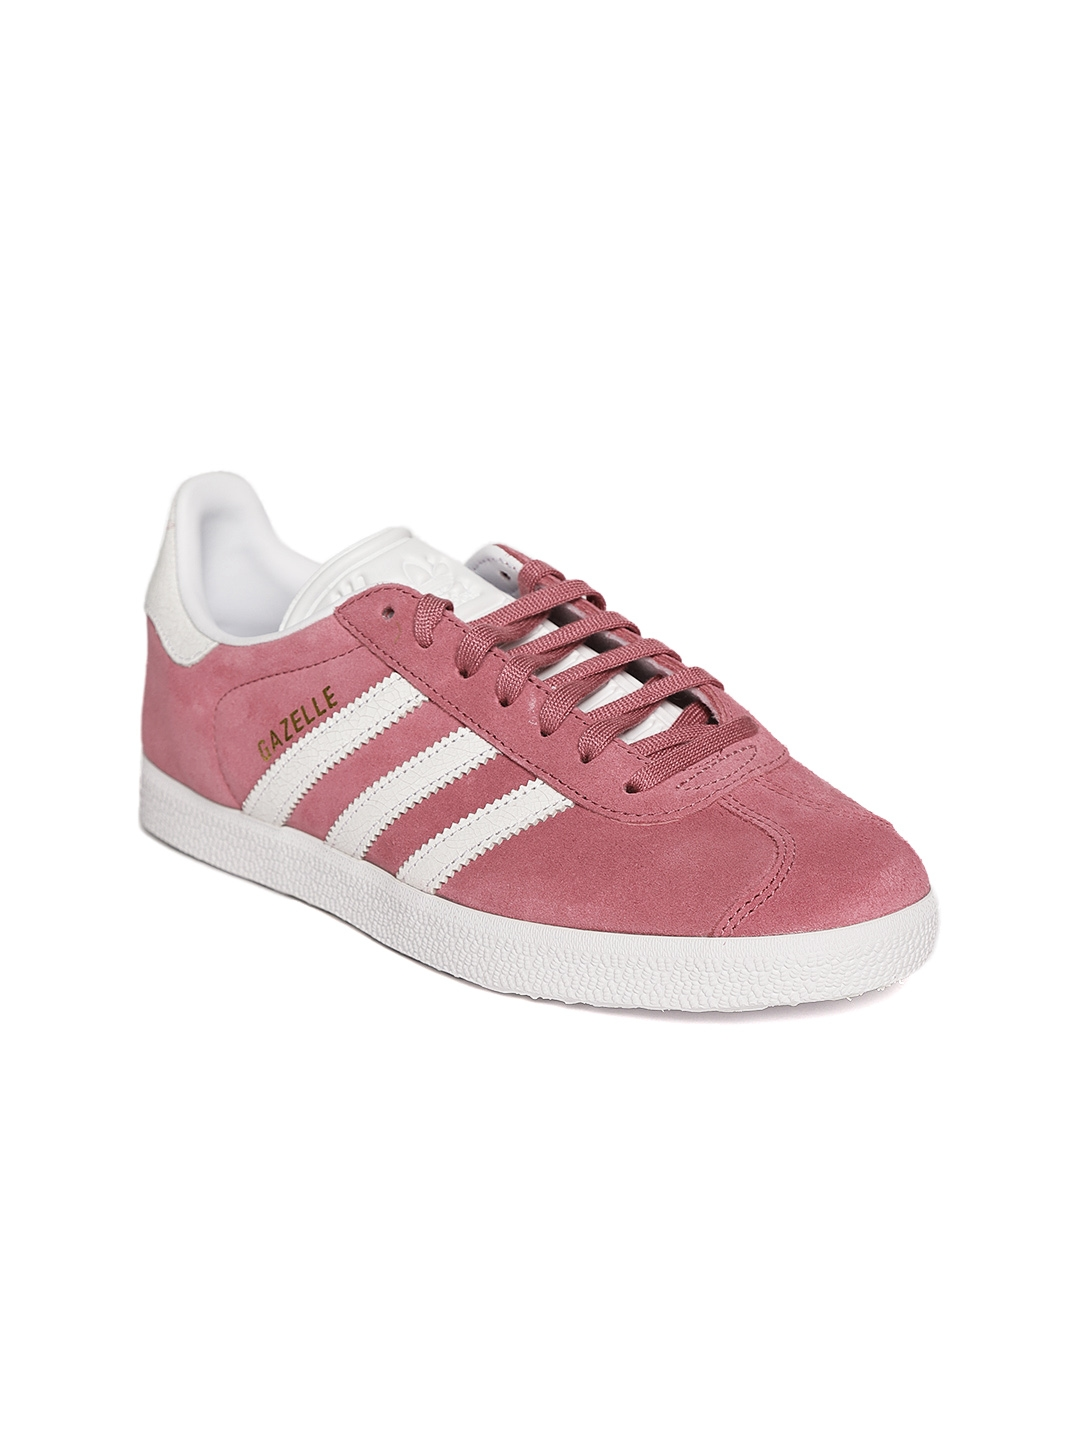 Buy ADIDAS Originals Women Pink Gazelle Casual Shoes - Casual Shoes ... 97bec0754